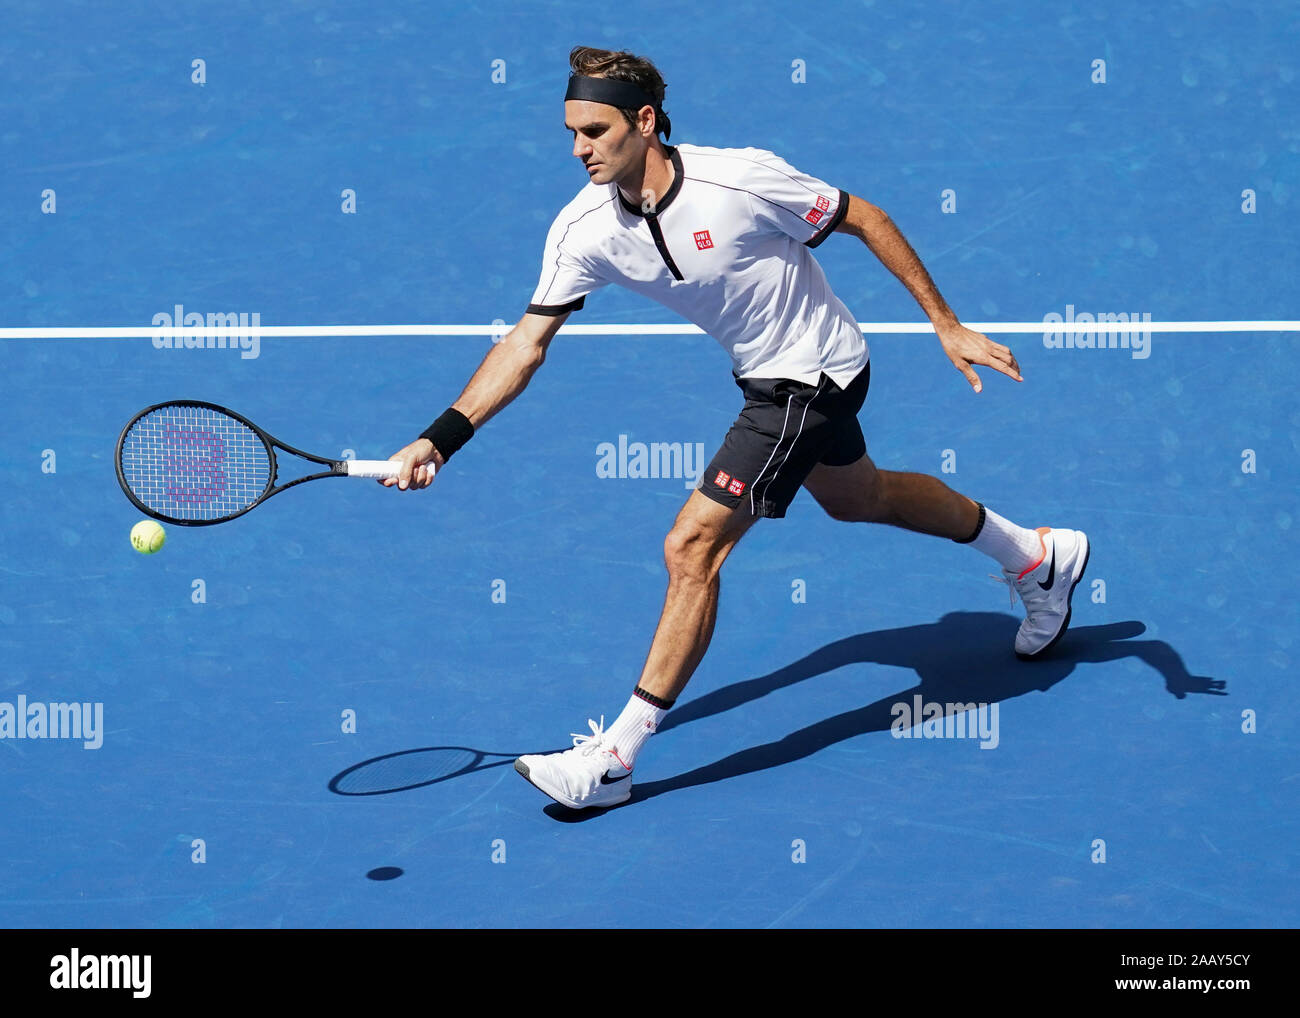 Swiss Tennis Player Roger Federer Playing Forehand Volley During 2019 Us Open Tennis Tournament New York City New York State Usa Stock Photo Alamy